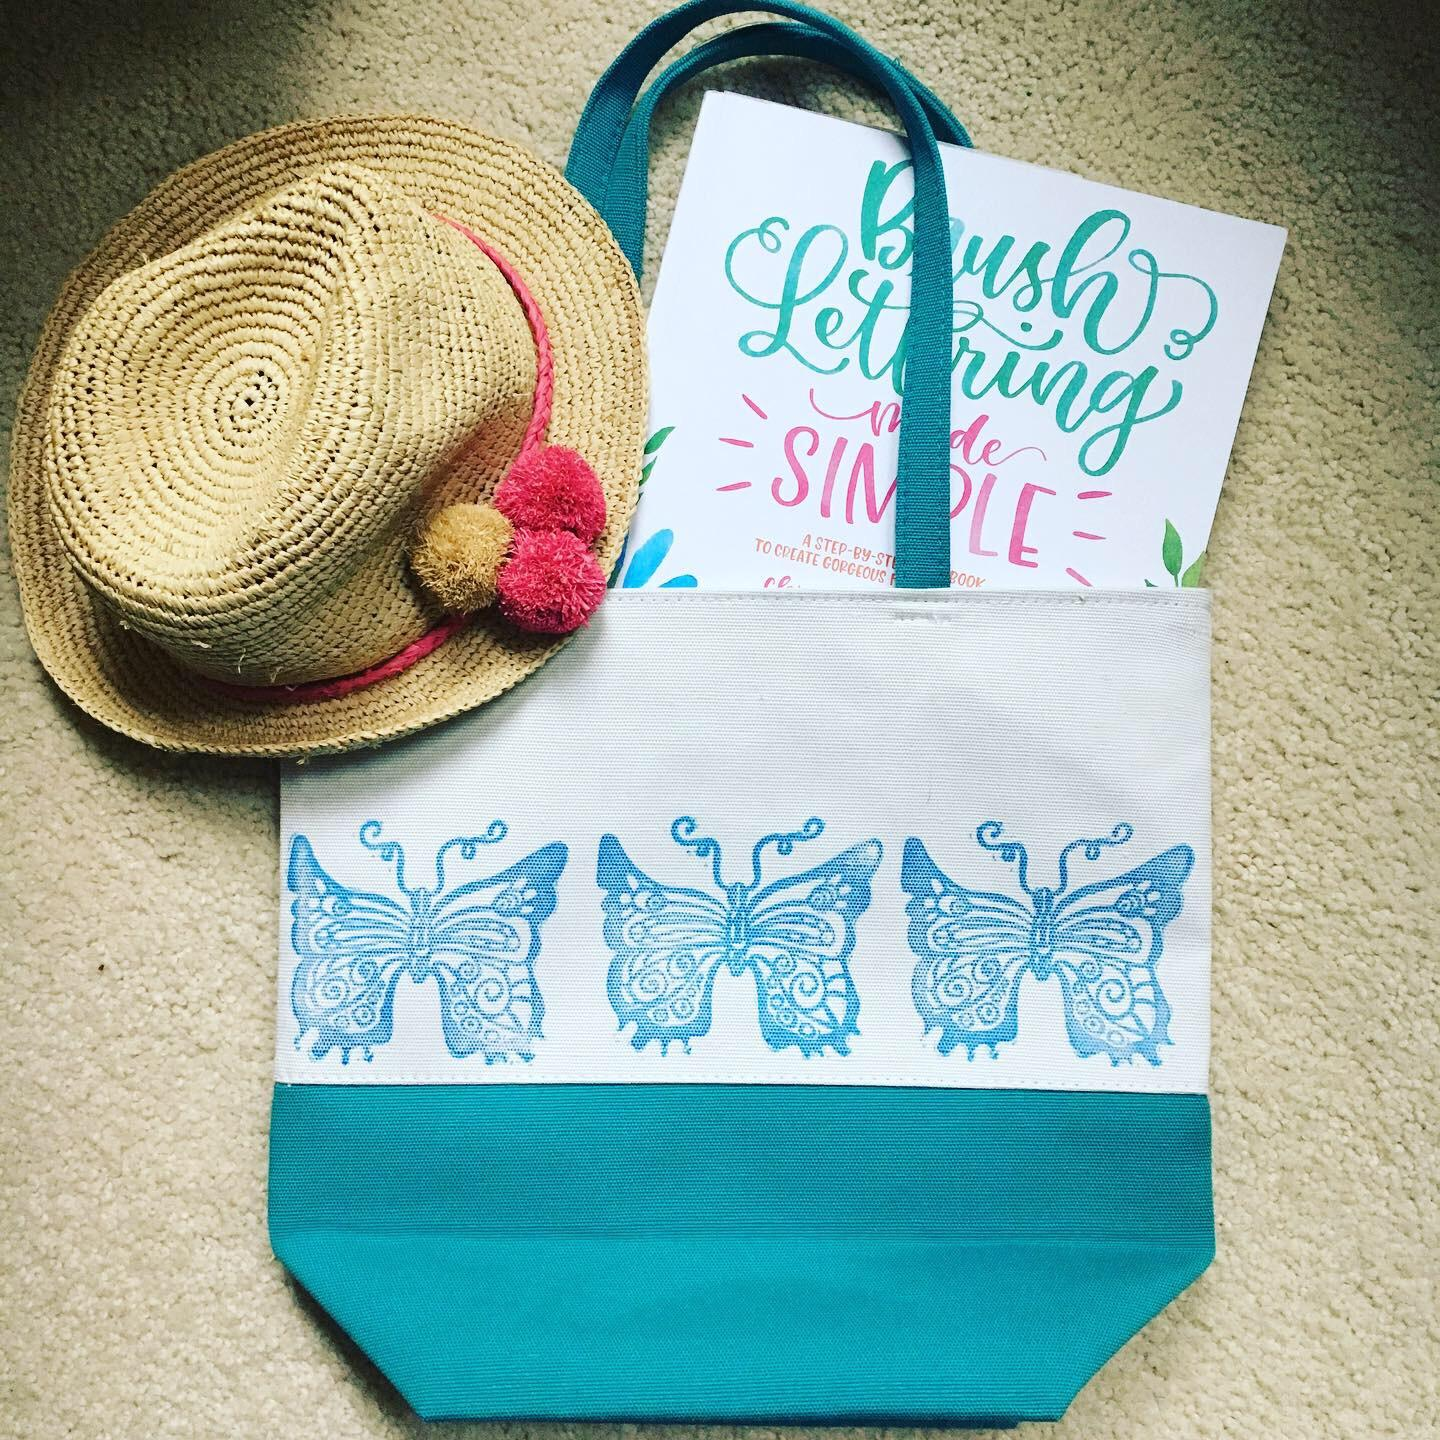 This tote bag features my butterfly stamp on fabric! I'm using all purpose blue ink and it looks amazing. Check out more ideas at www.mystampedworld.com